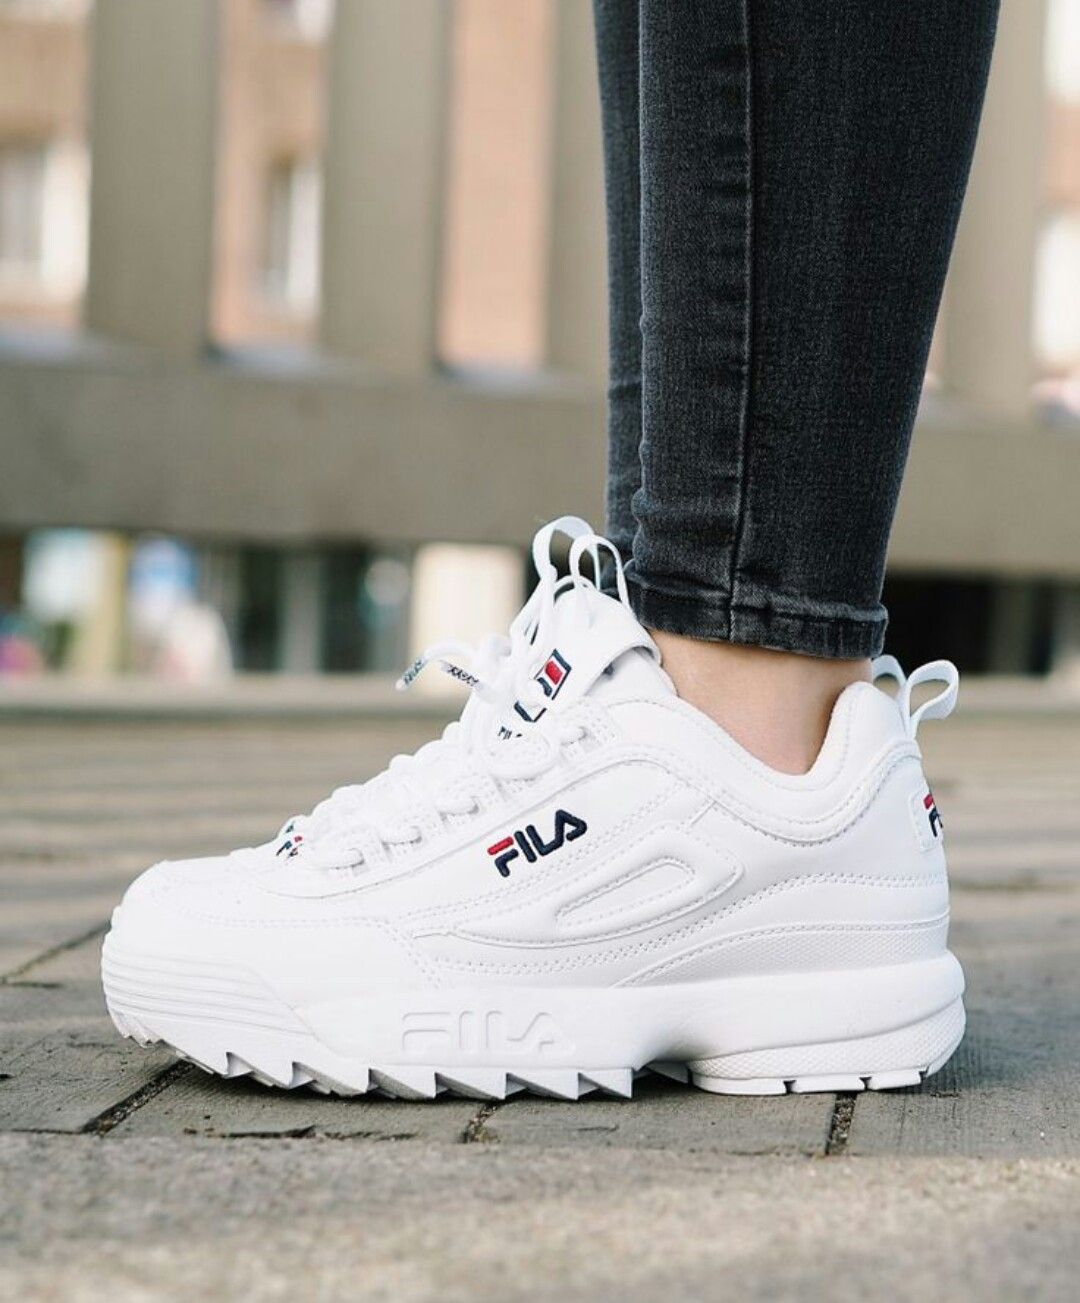 sale retailer 52d91 01a6f Fila desruptor Fila White Sneakers, Dad Sneakers, New Shoes, Fake Shoes, Me